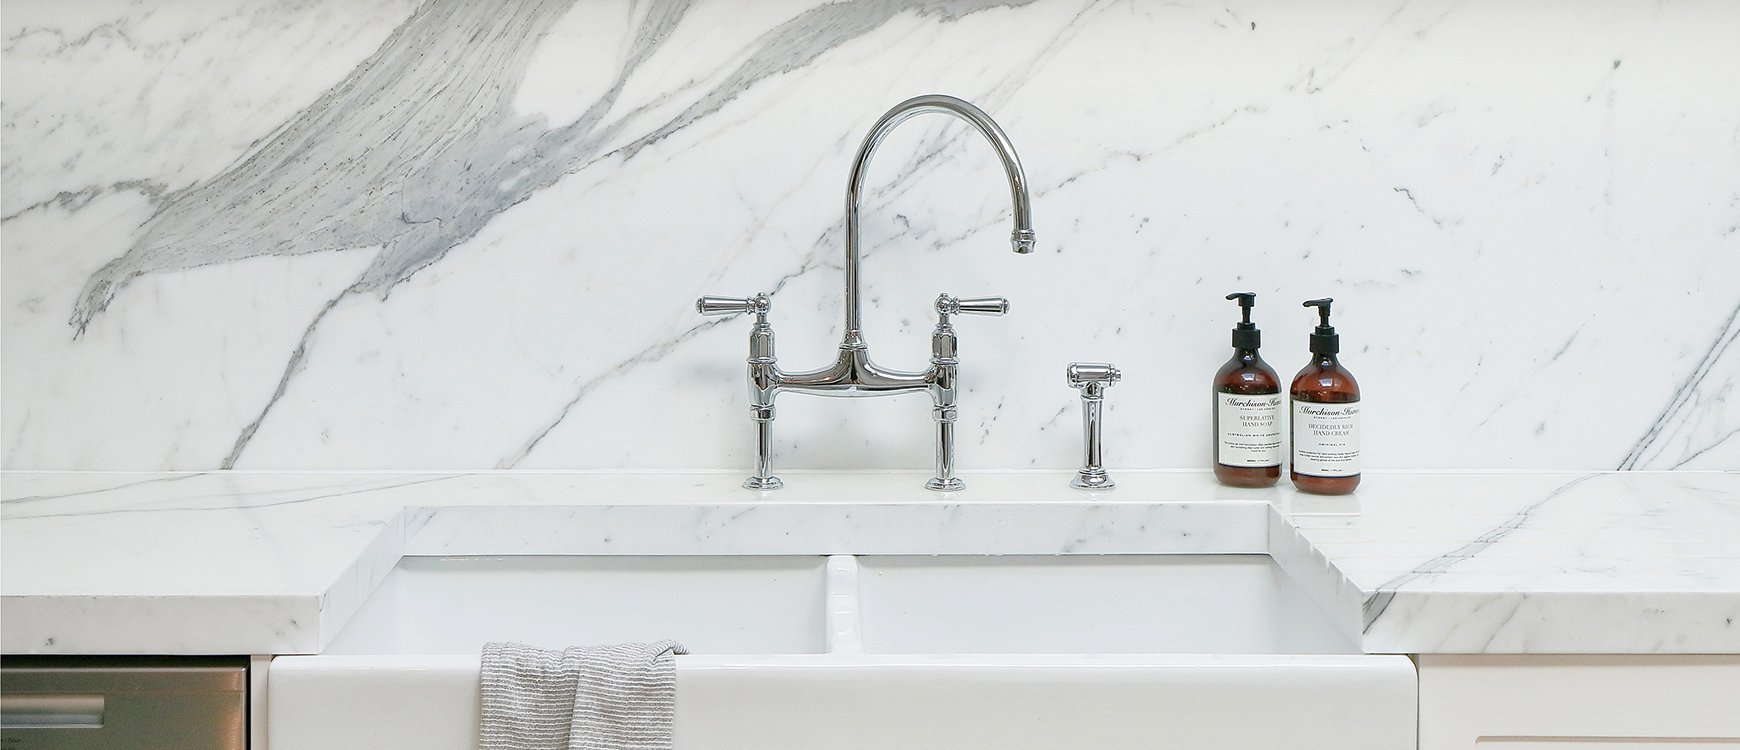 Perrin & Rowe Ionian Bridge Style Mixer Tap - A Design